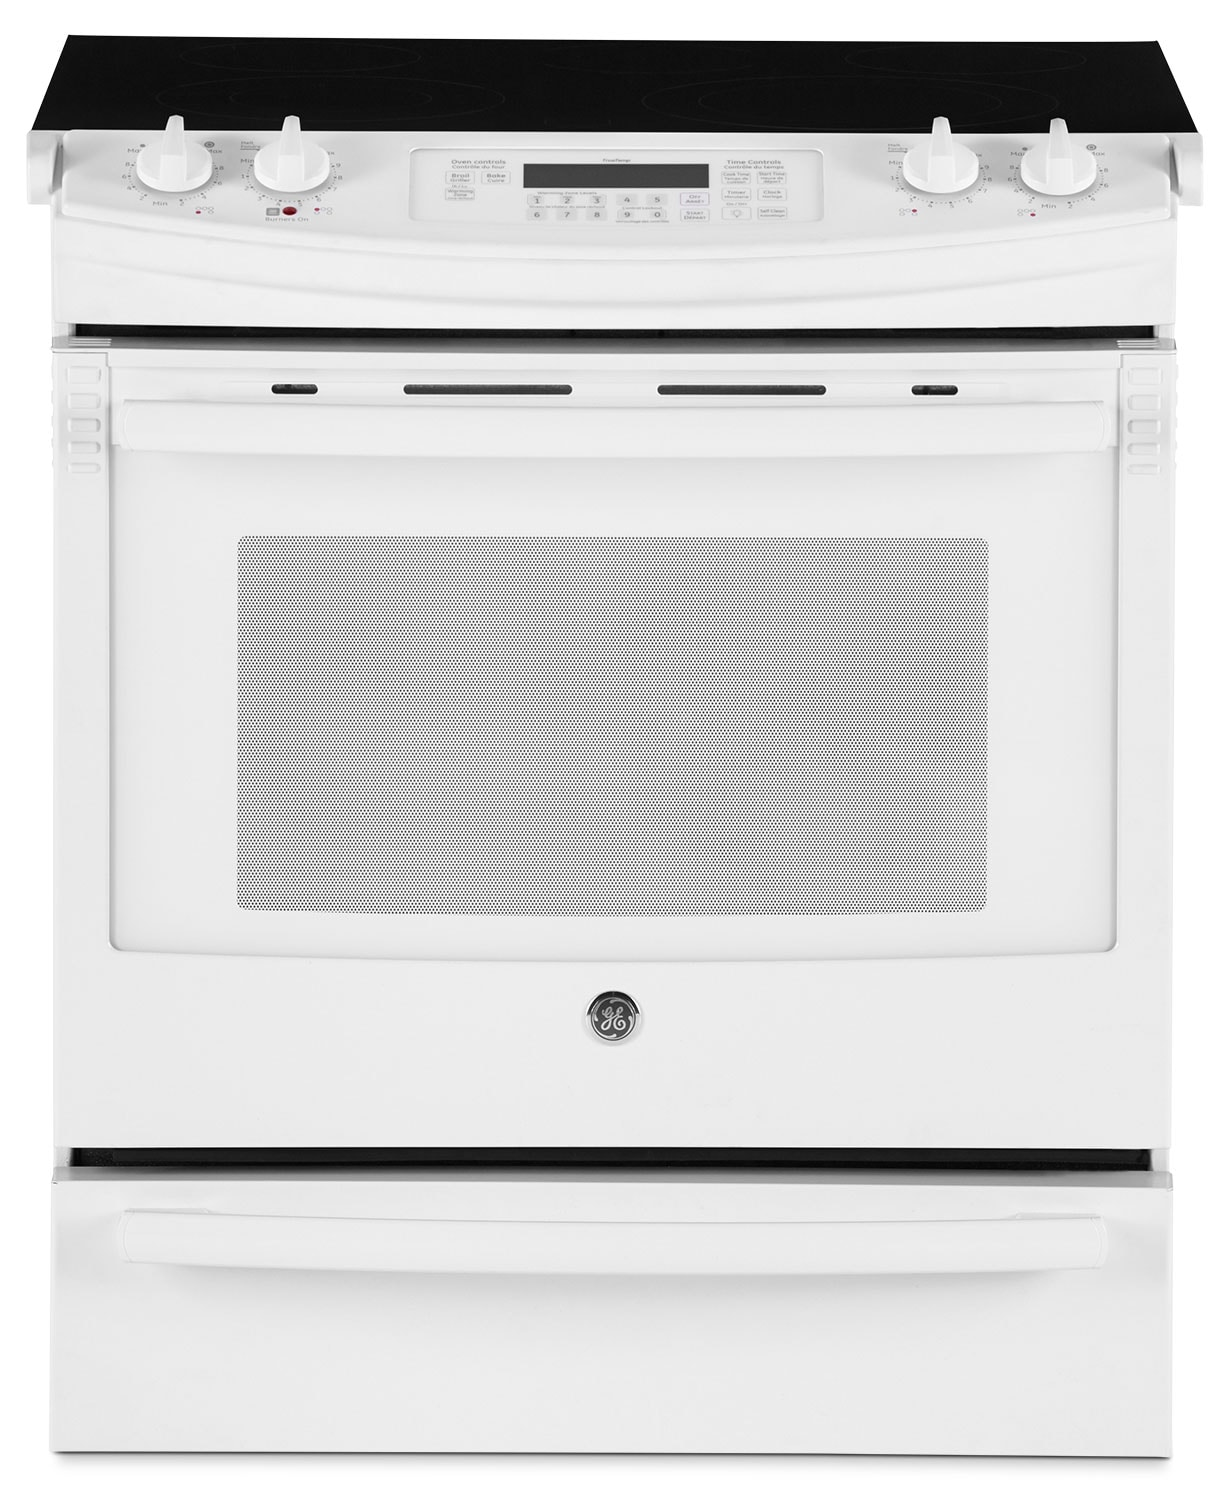 GE 5.2 Cu. Ft. Slide-In Electric Range – JCS630DFWW